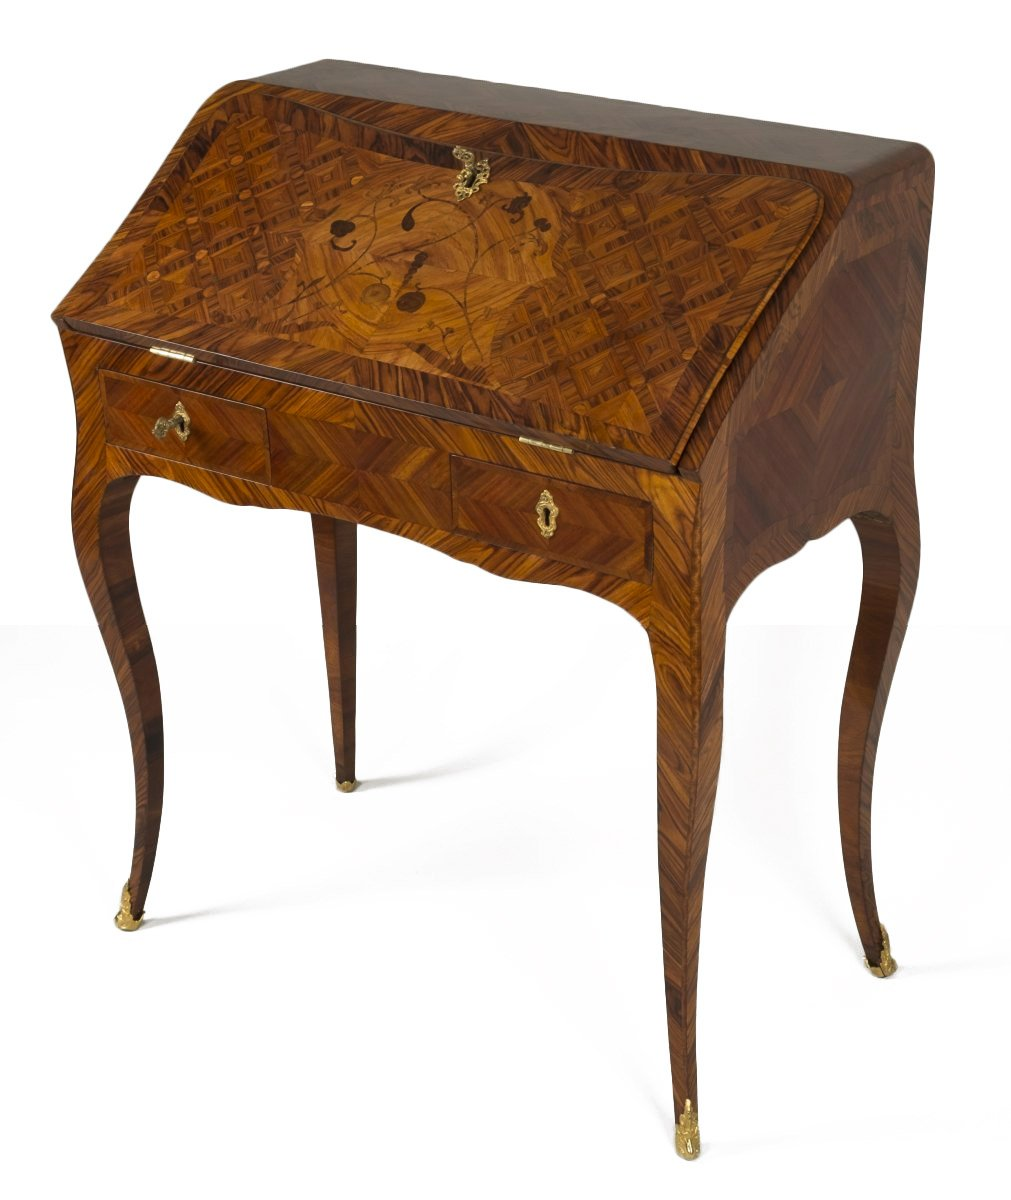 bureau dos d 39 ne d 39 poque louis xv estampill i c saunier xviiie si cle. Black Bedroom Furniture Sets. Home Design Ideas